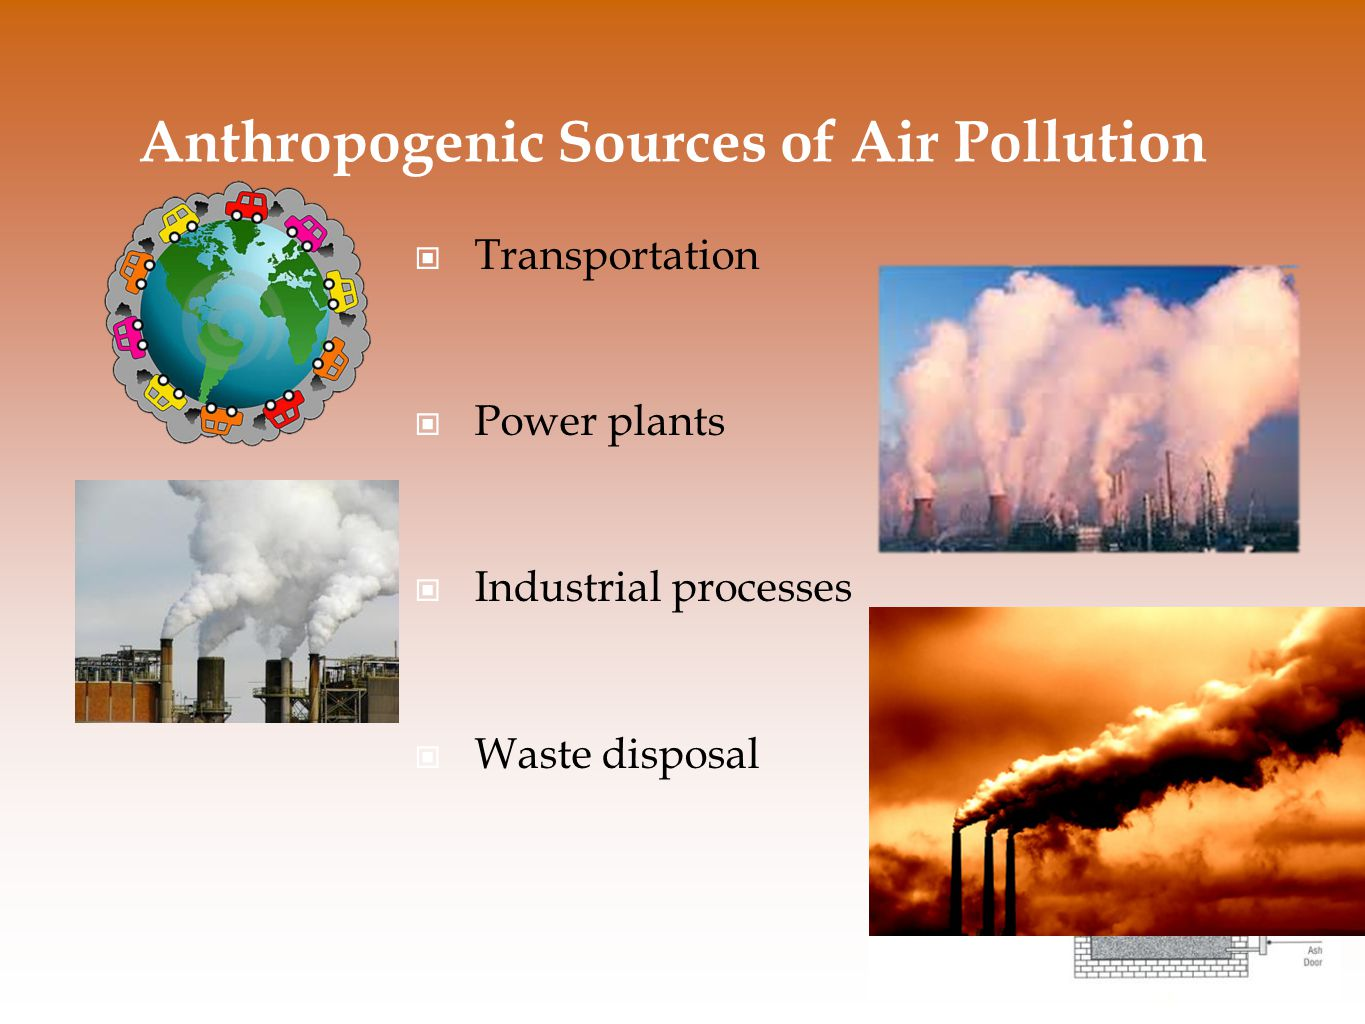 Anthropogenic Sources of Air Pollution